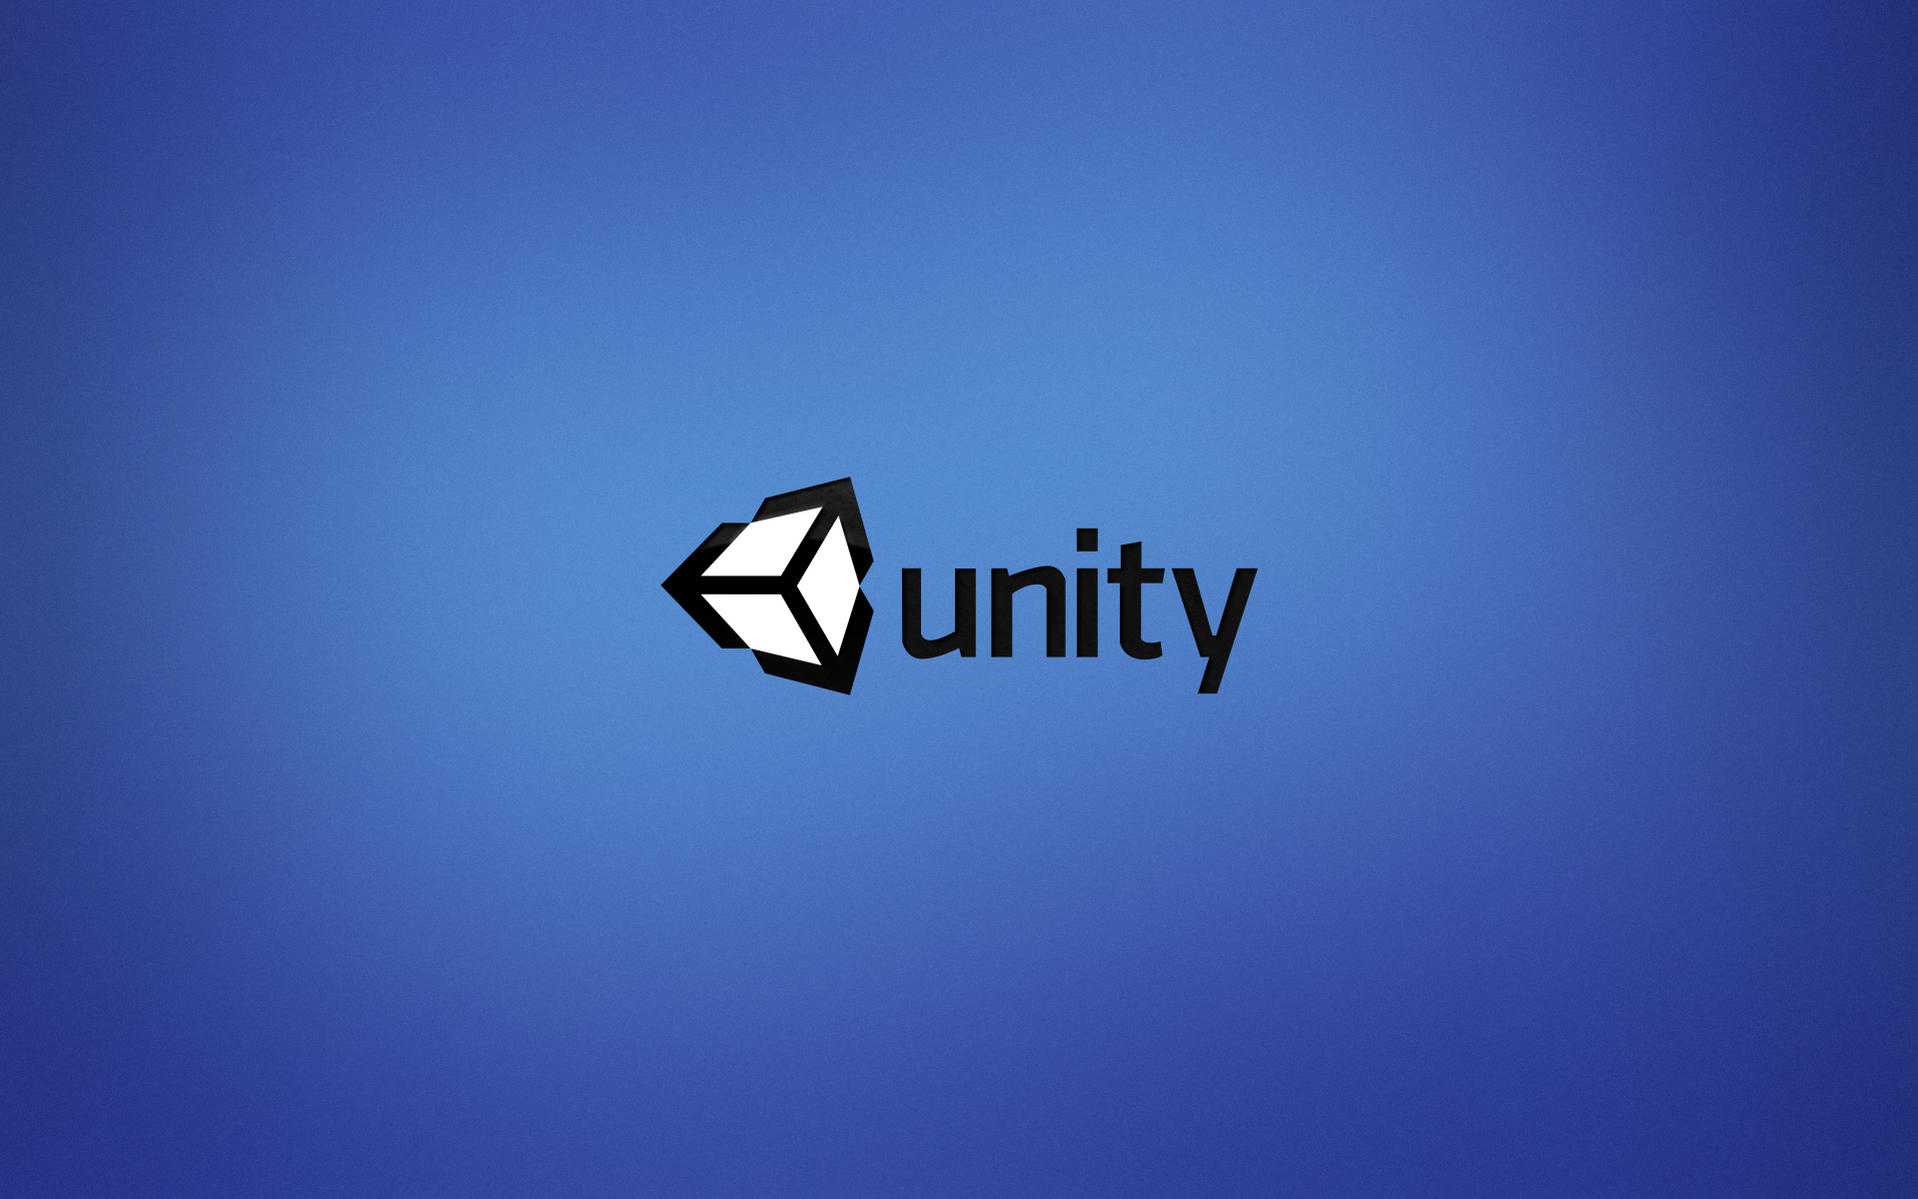 ... Engine for indie and commercial game making tutorial - Unity - Mod DB